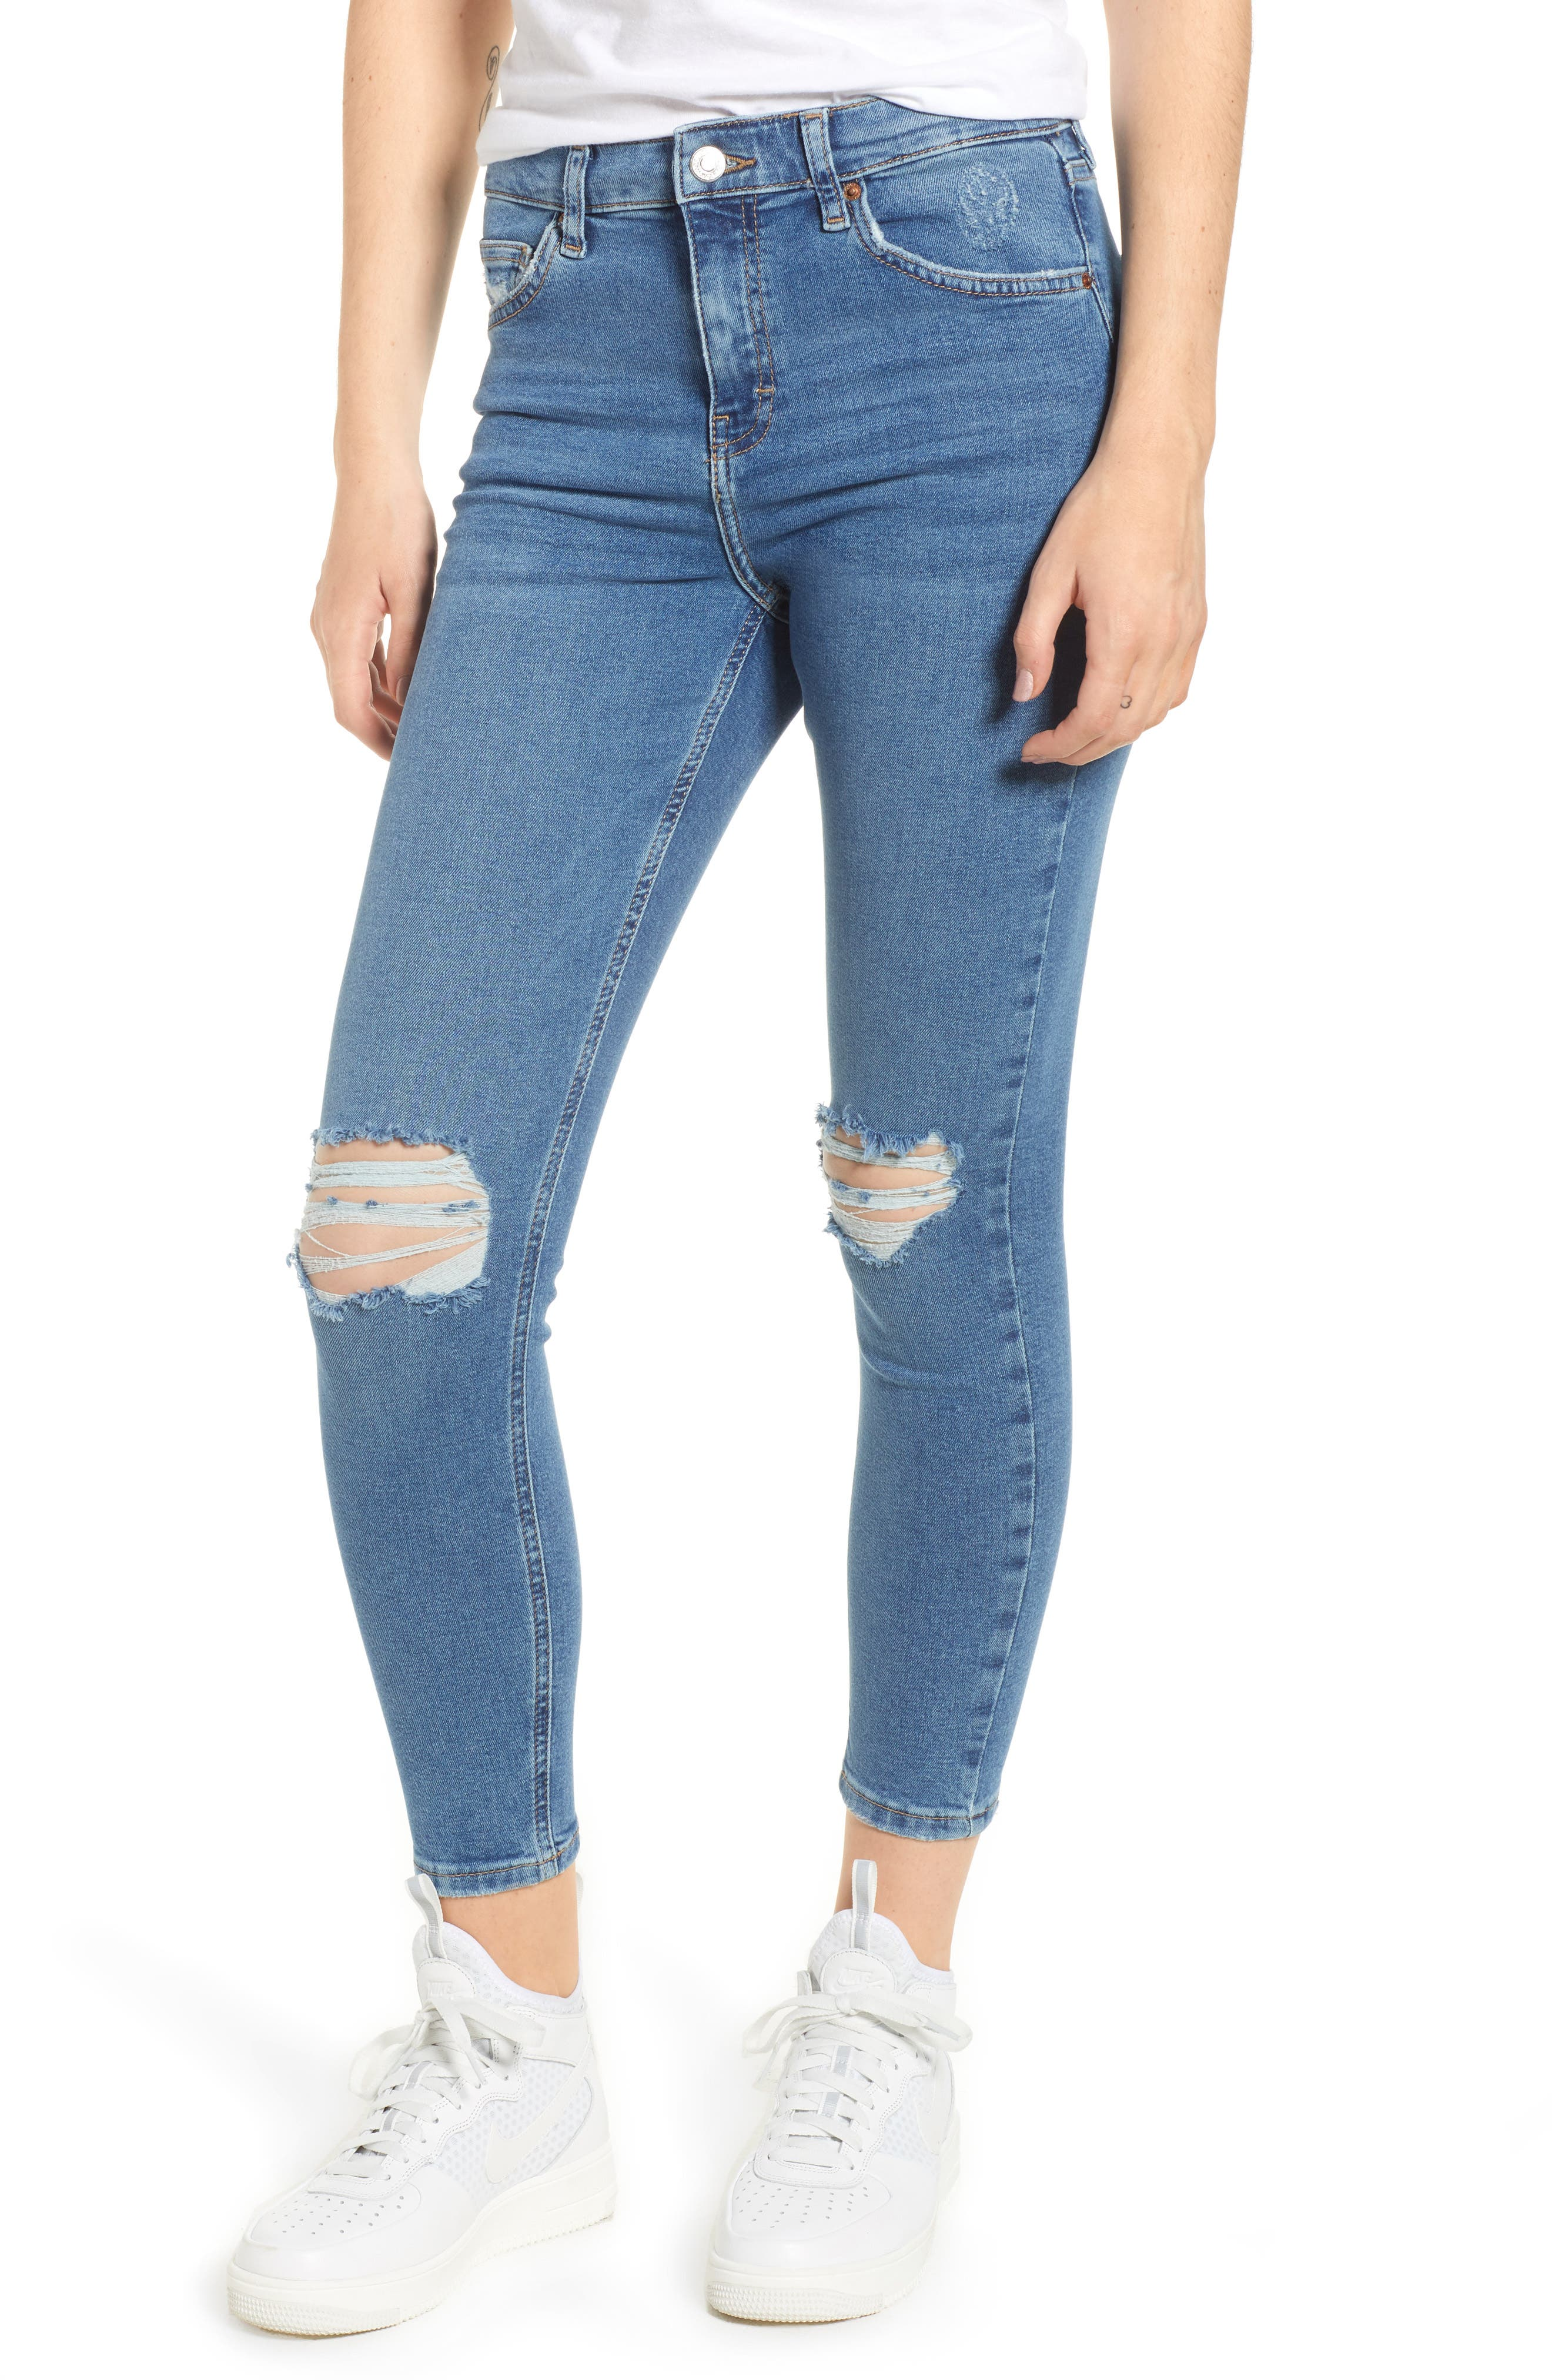 TOPSHOP, Jamie Ripped Jeans, Main thumbnail 1, color, MID DENIM